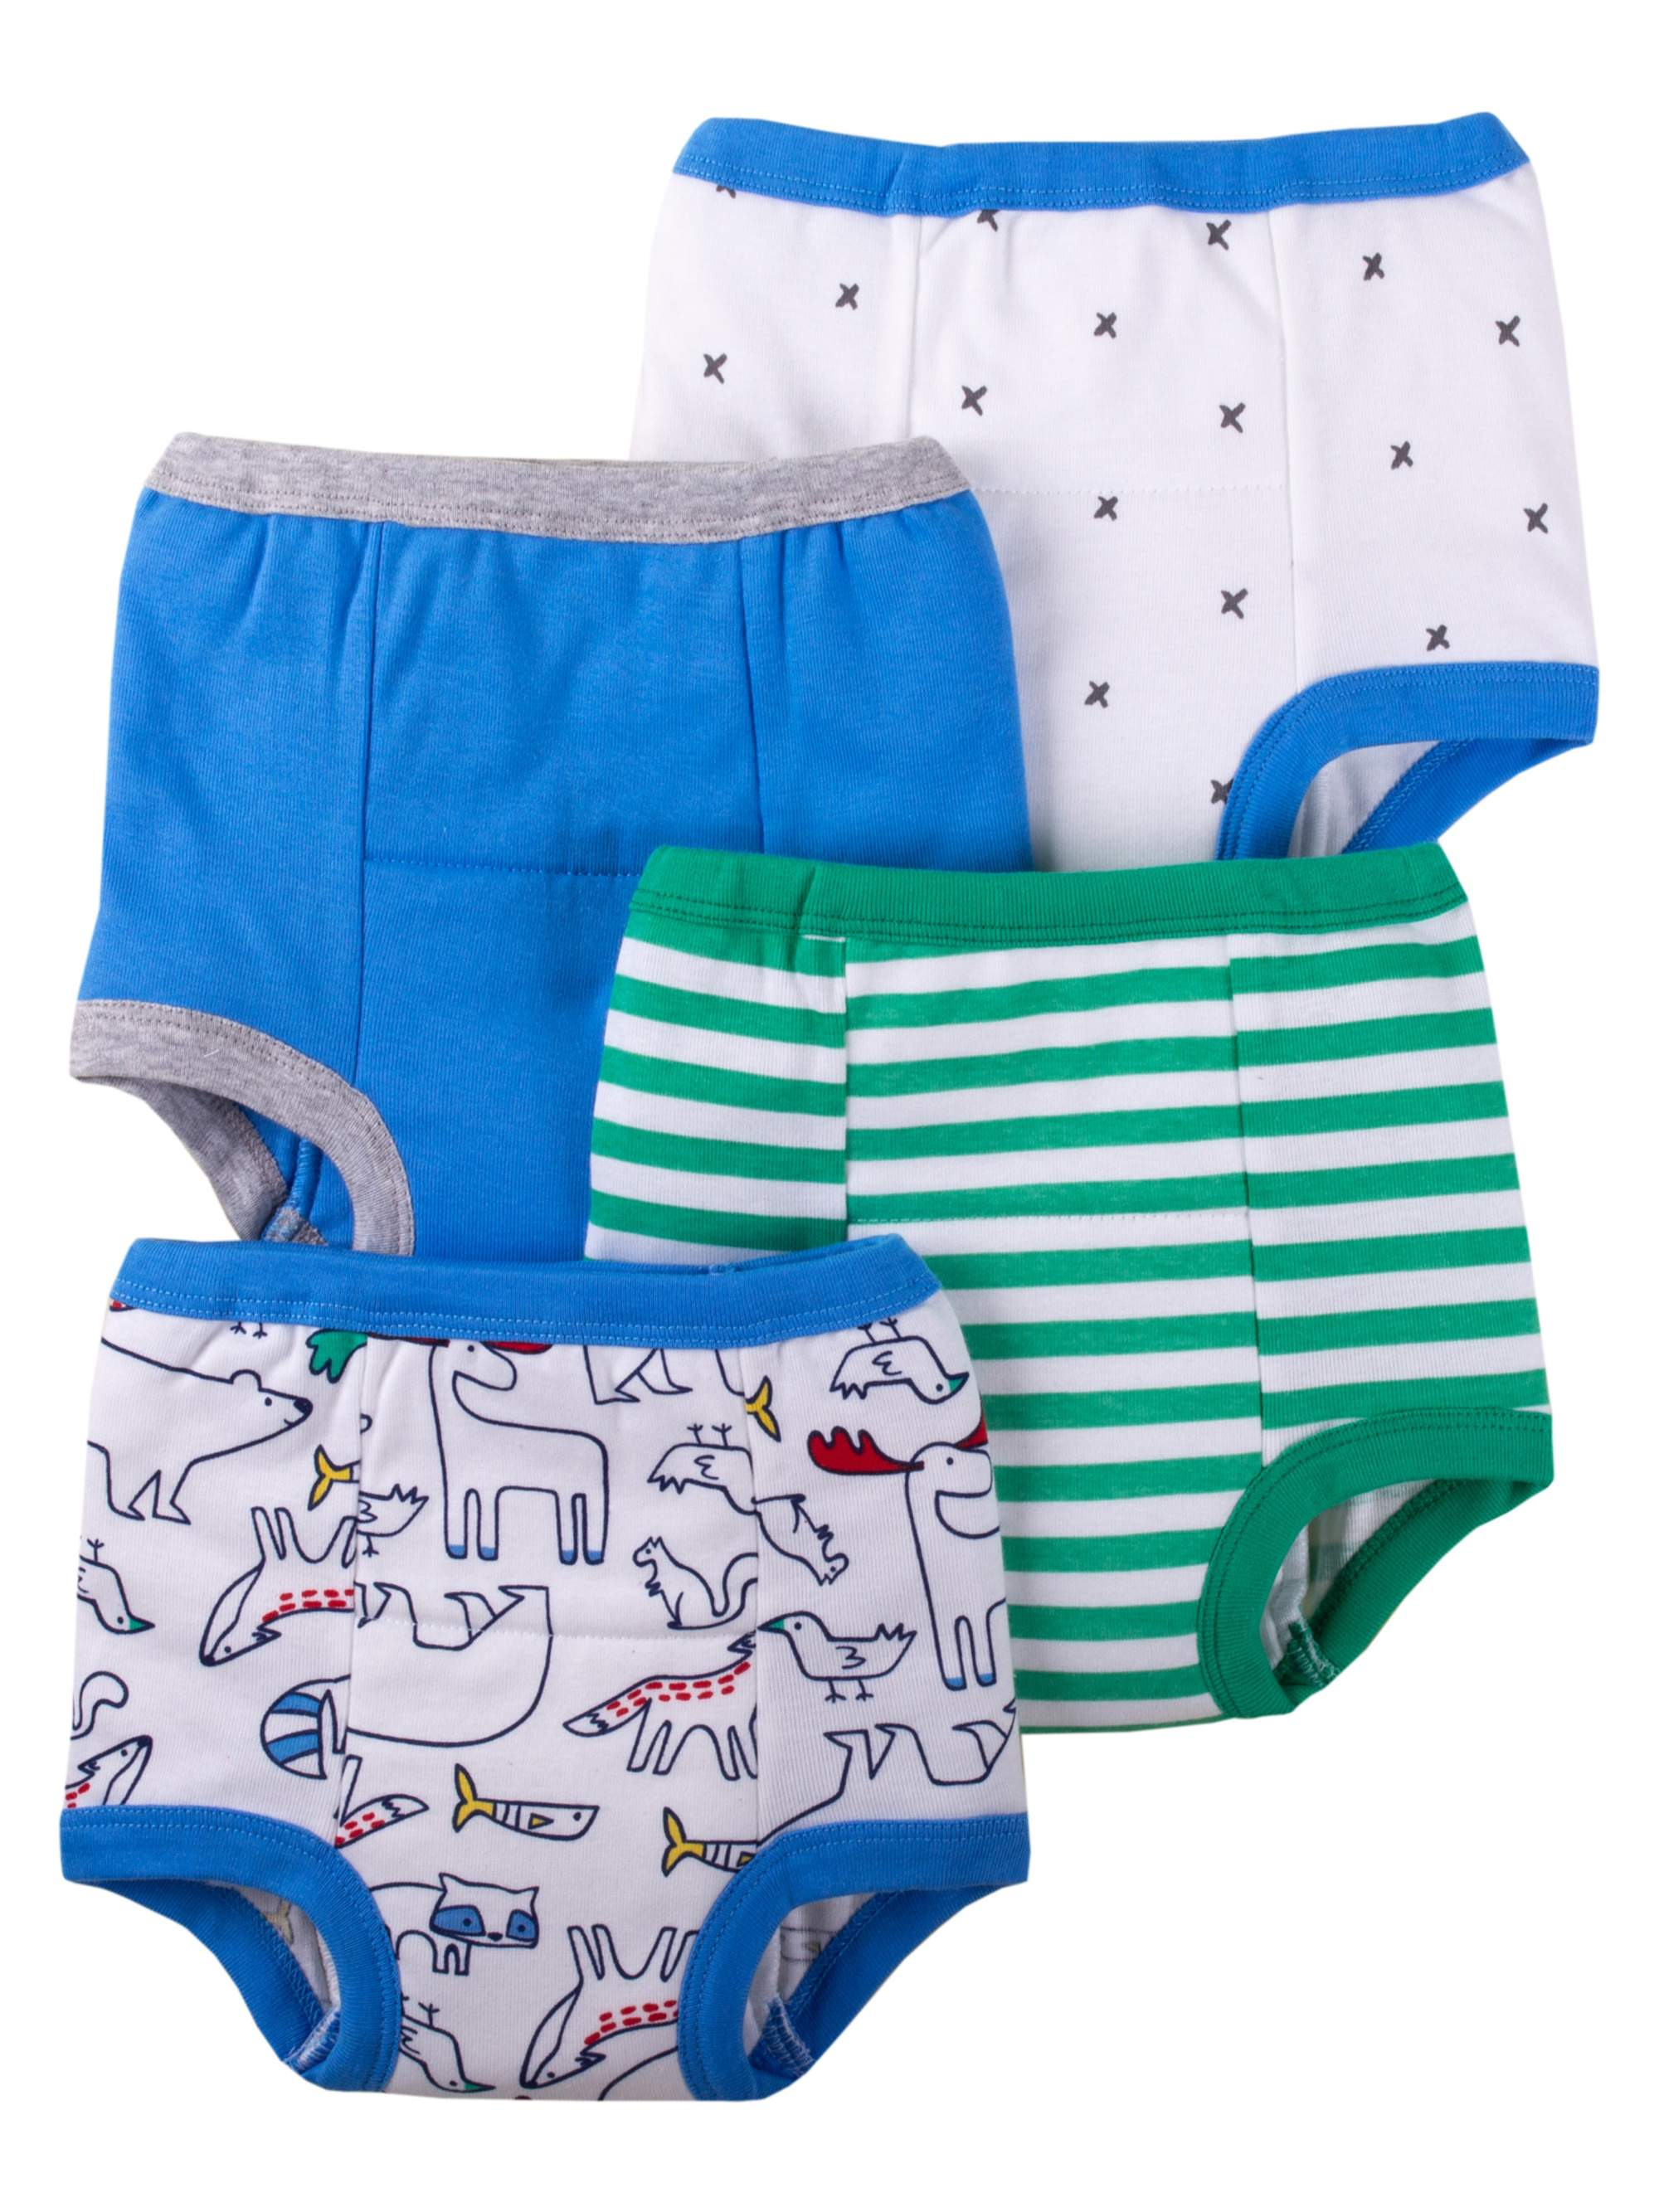 Assorted Pattern Organic Cotton Training Pants, 4-Pack (Toddler Boys)